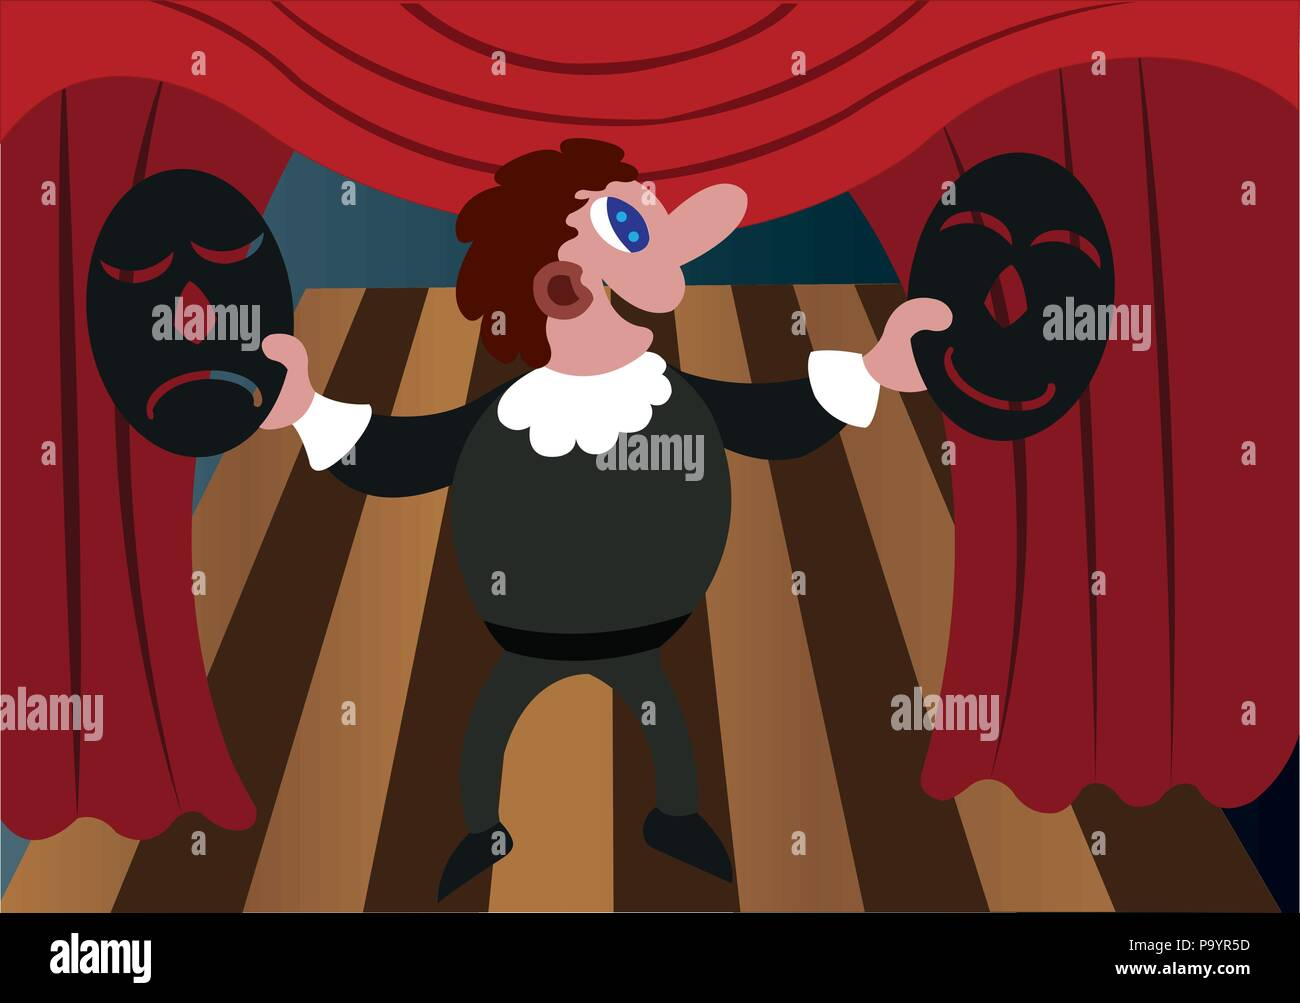 a stage actor displays comedy and tragedy Masks, - Stock Image